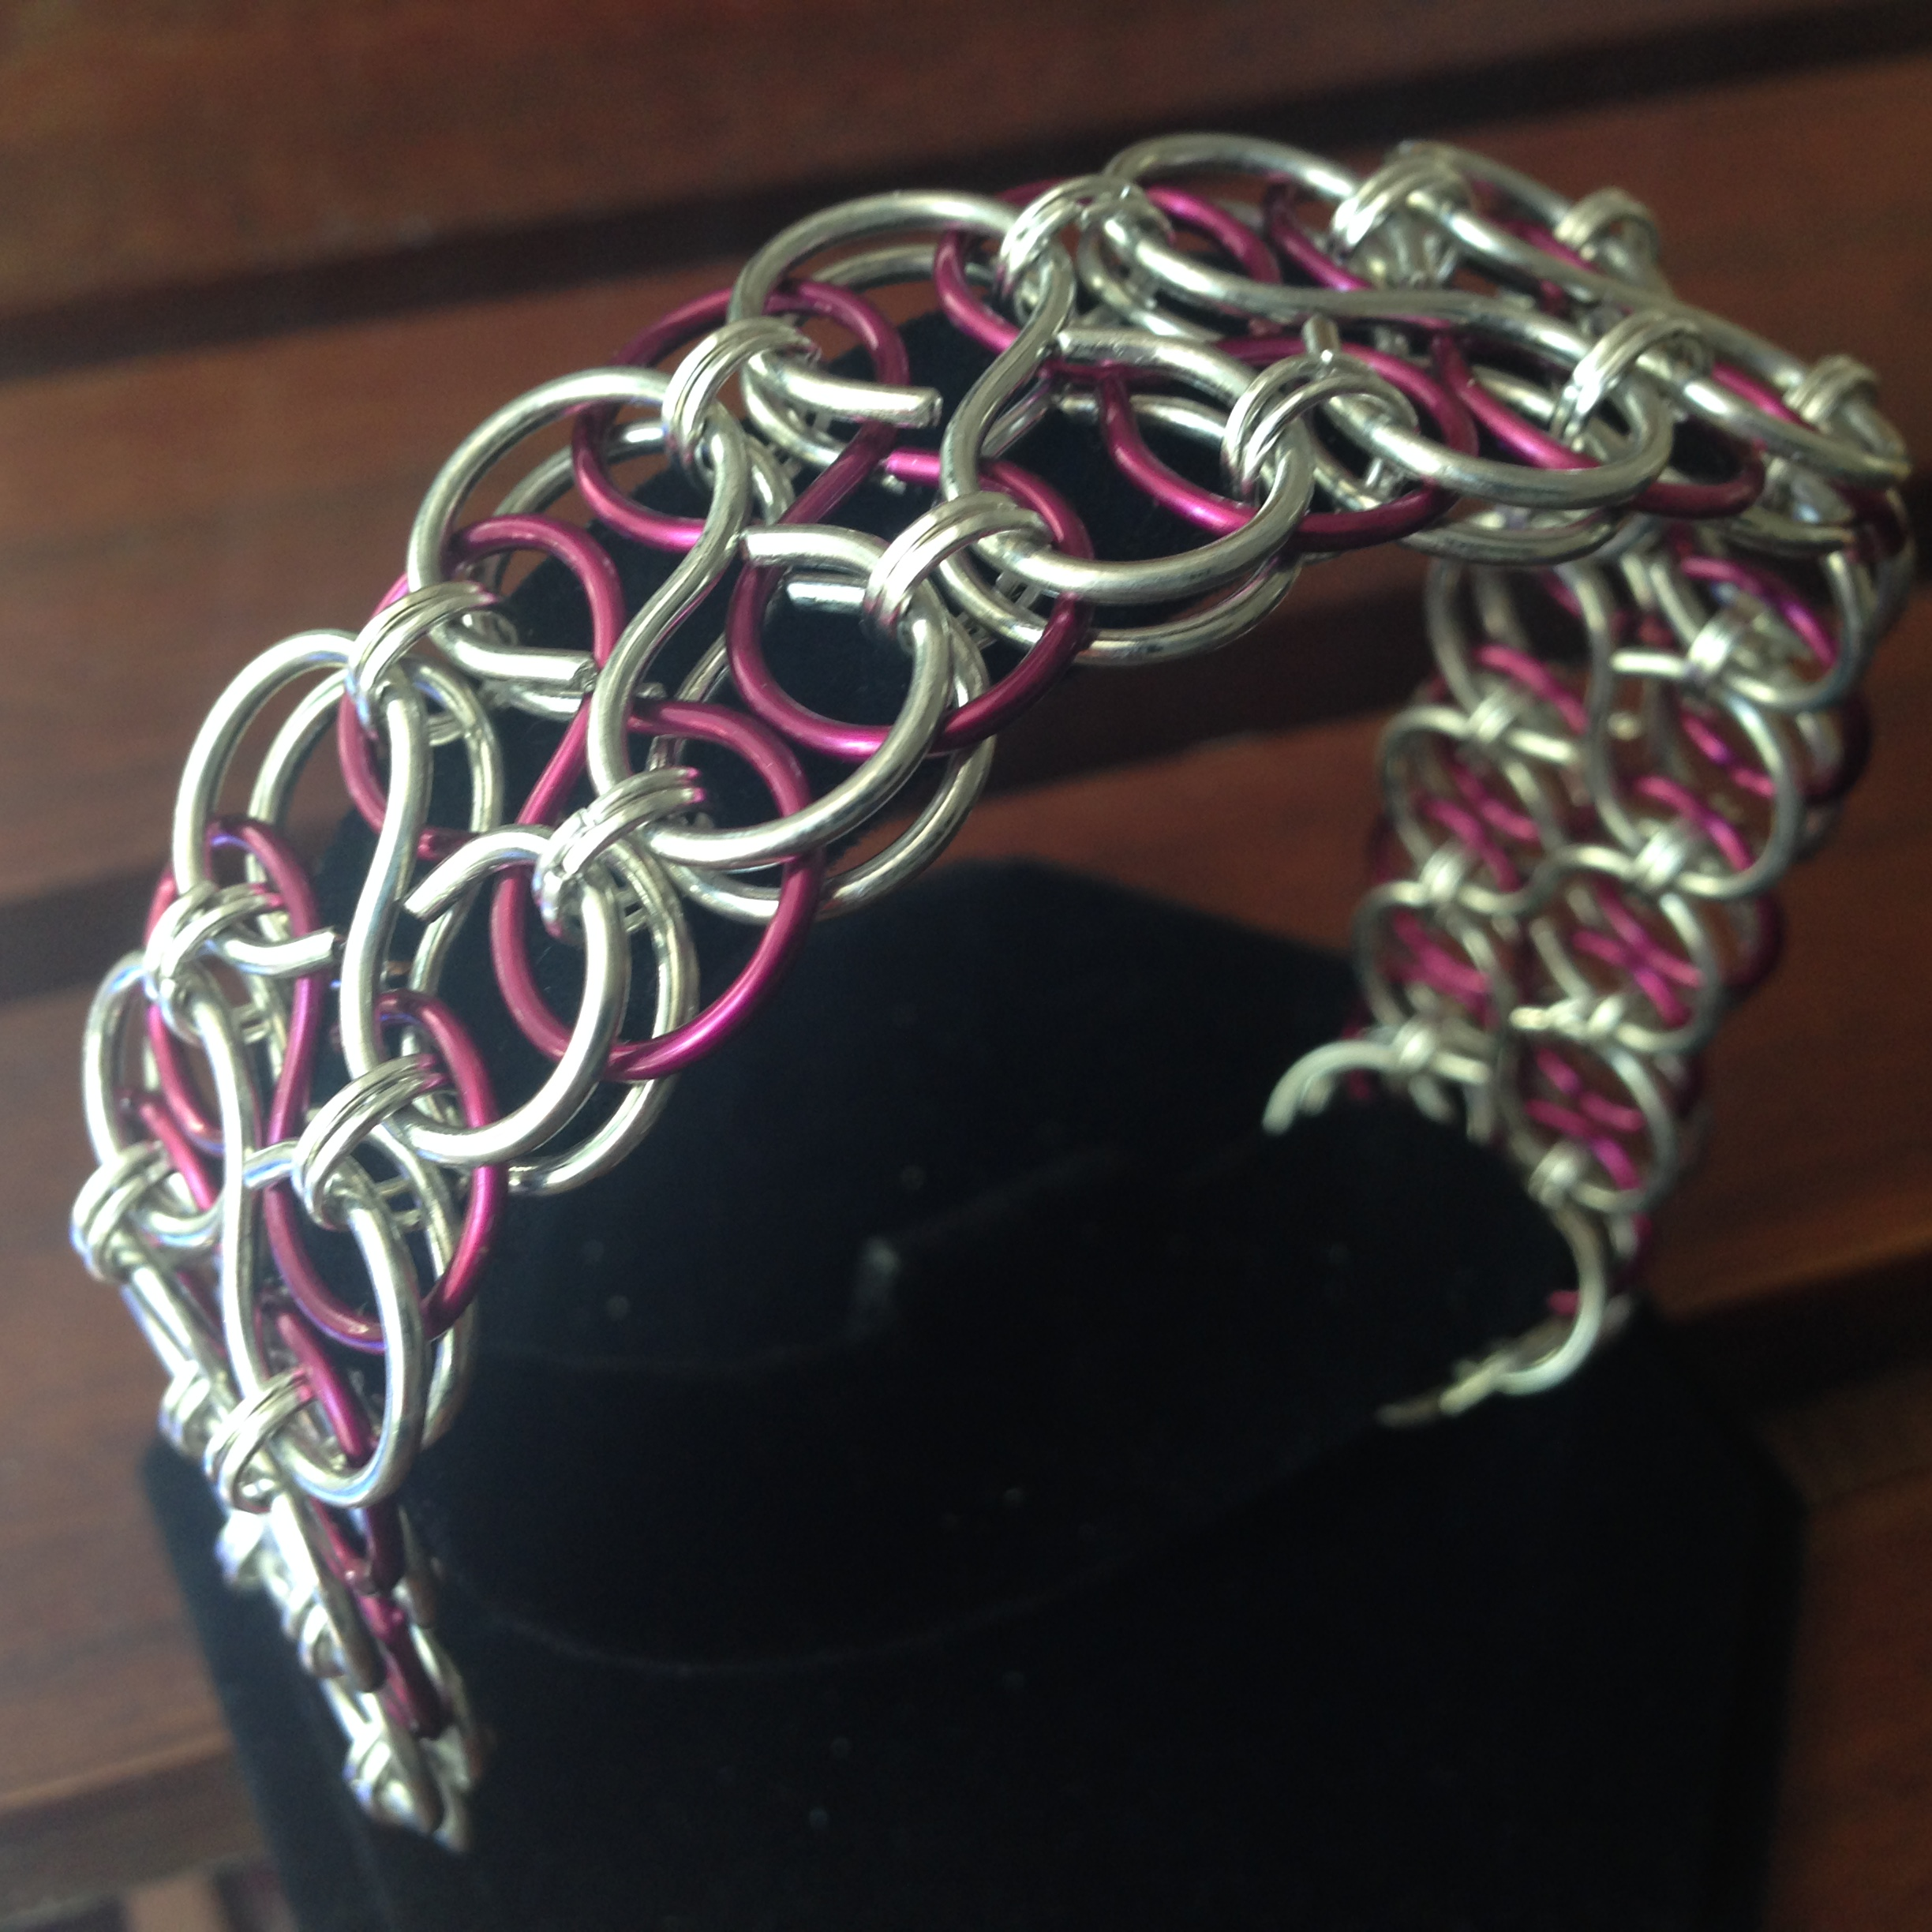 Wire bracelet figure-8 links